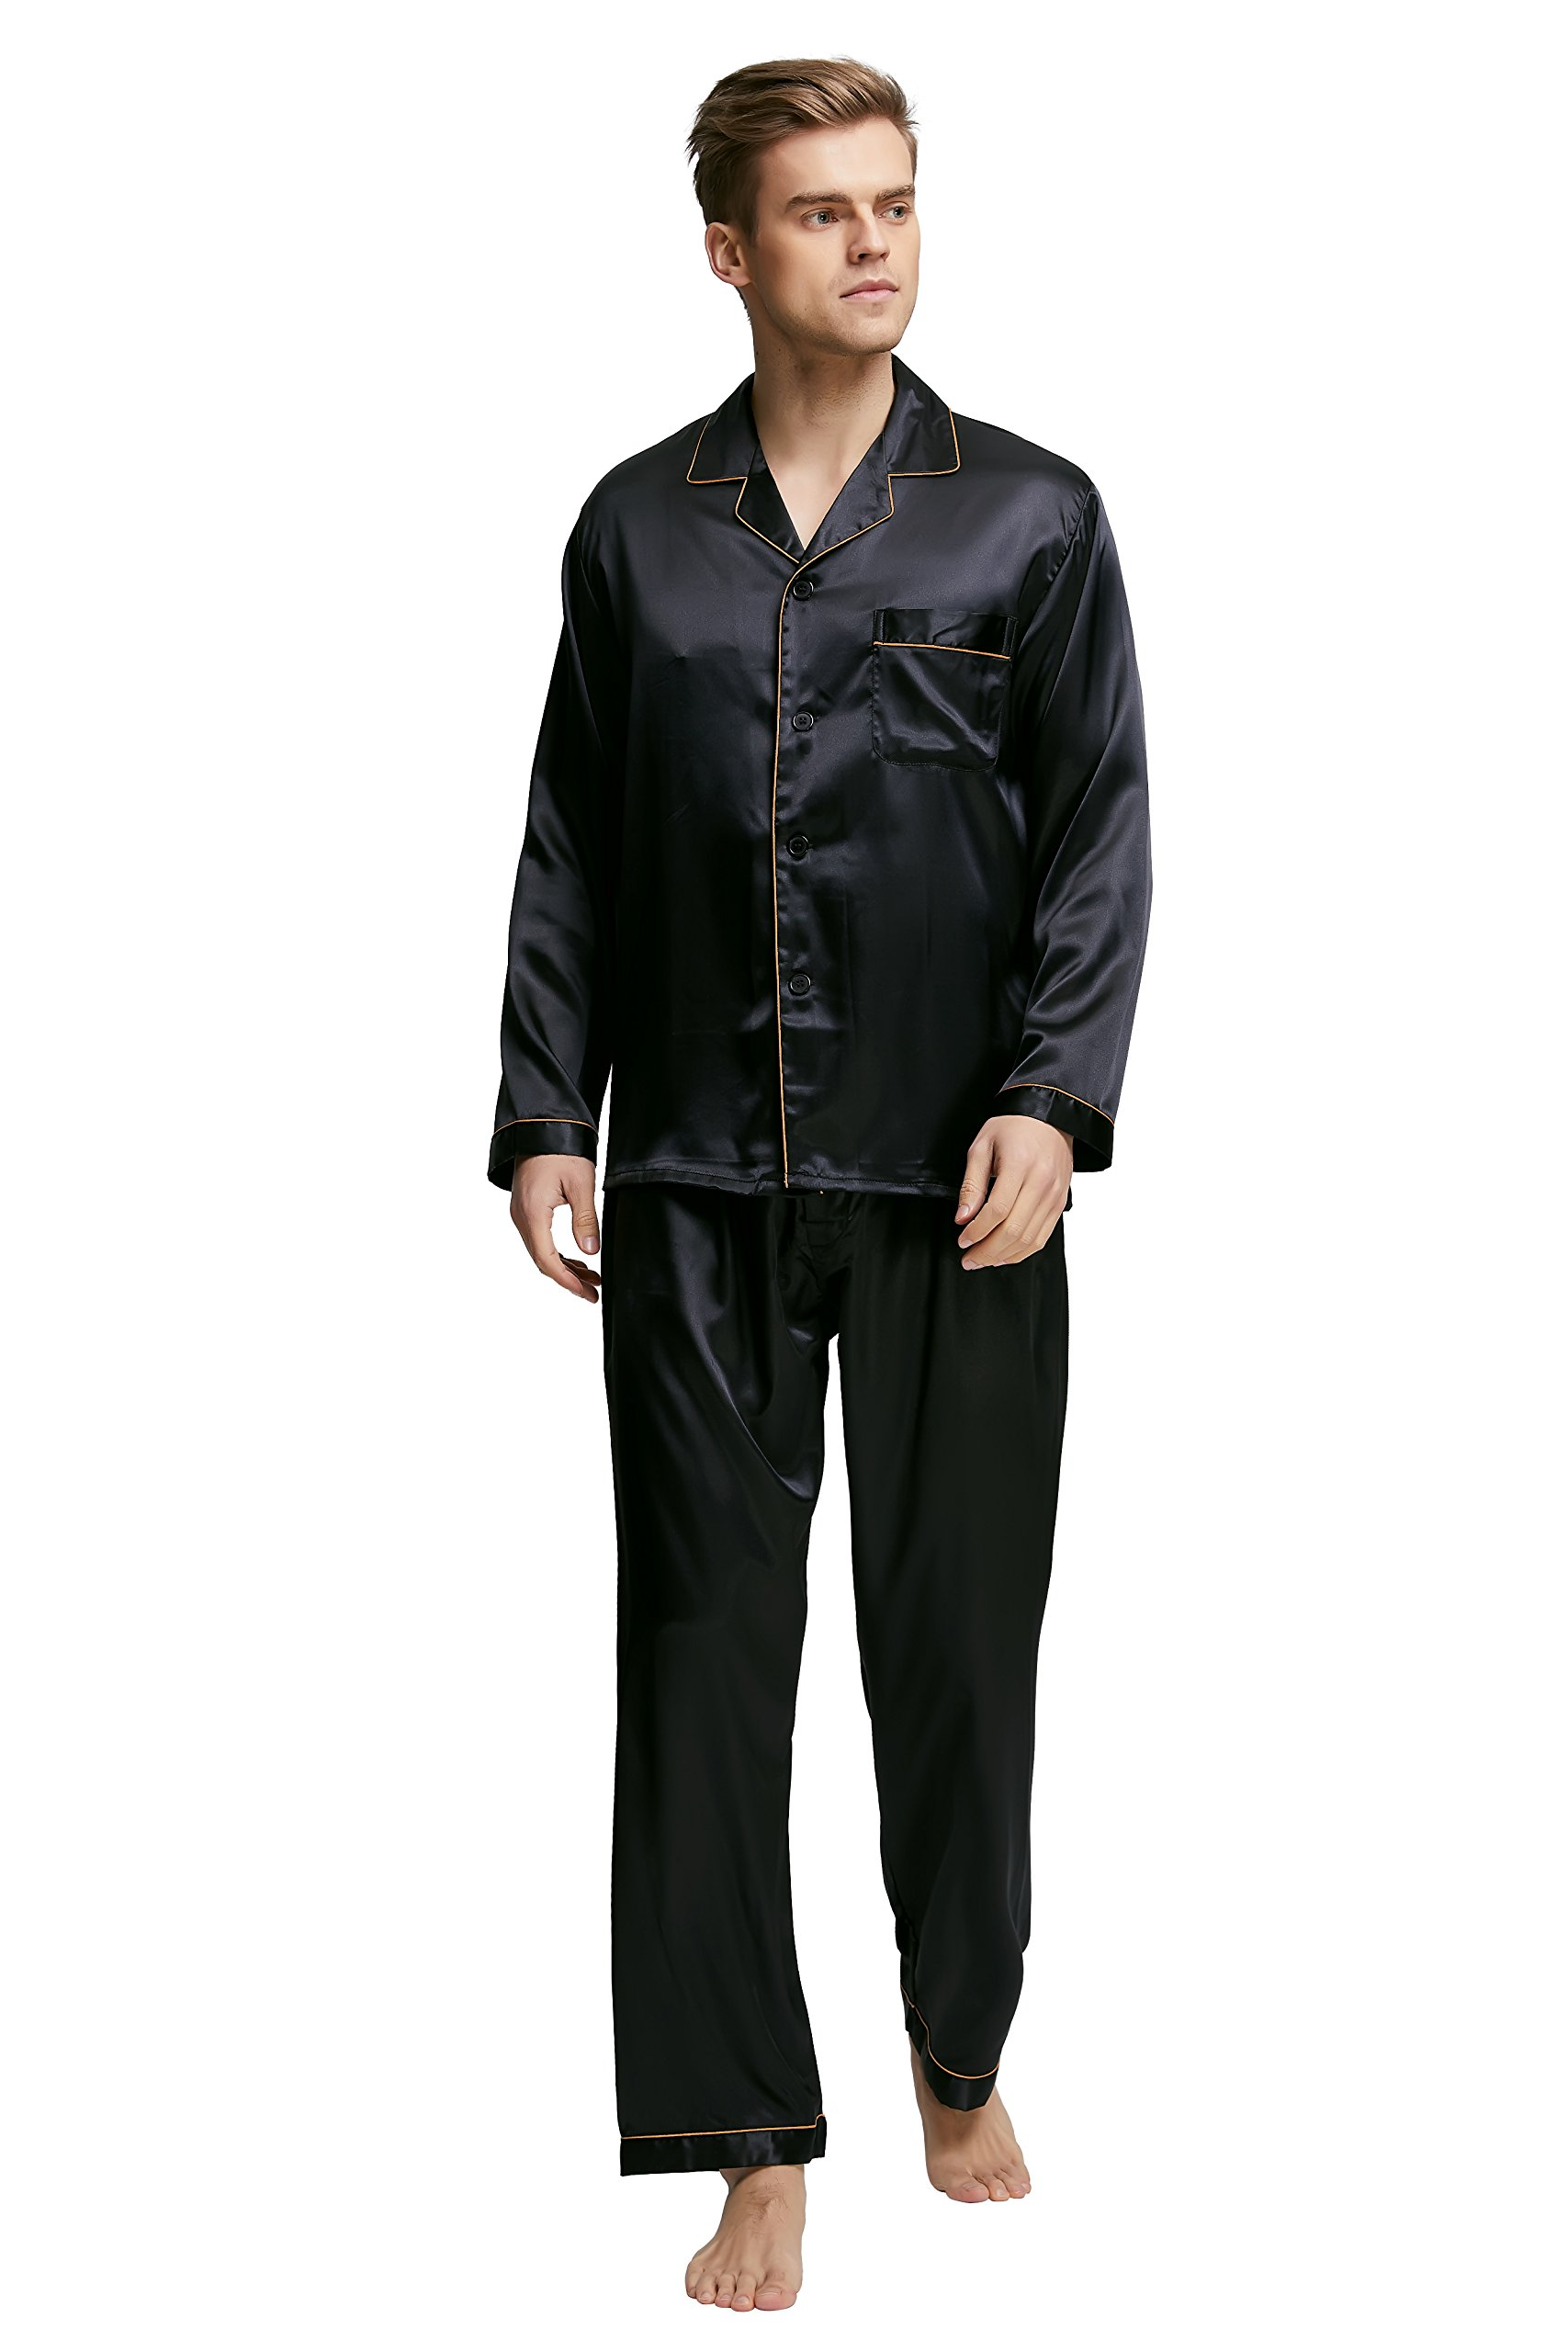 TONY AND CANDICE Men's Classic Satin Pajama Set Sleepwear (X-Large, Black With Golden Piping)